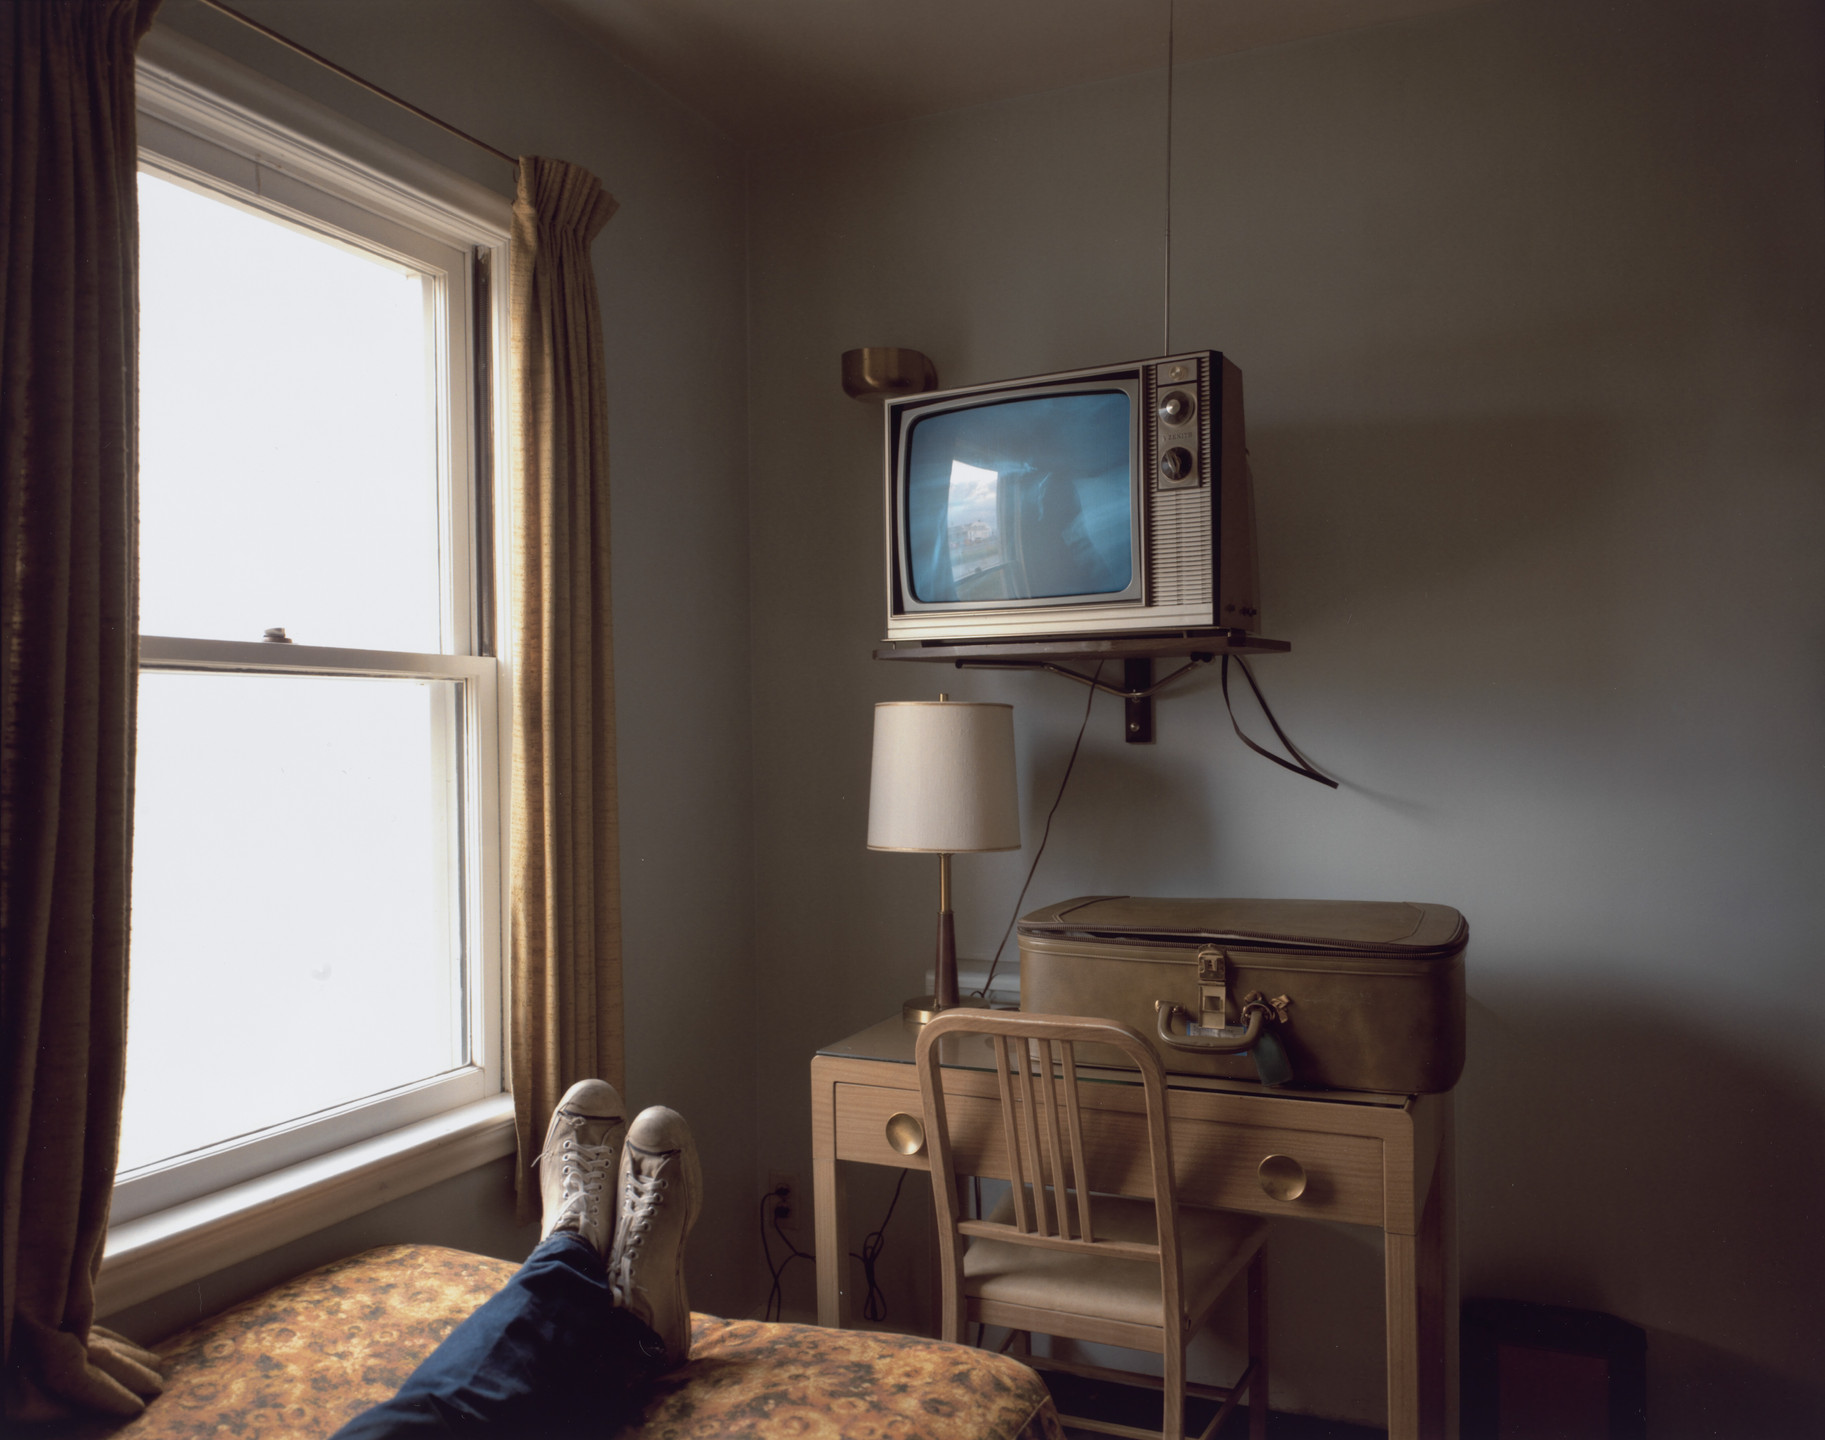 Stephen Shore. Room 125, Westbank Motel, Idaho Falls, Idaho, July 18, 1973. 1973